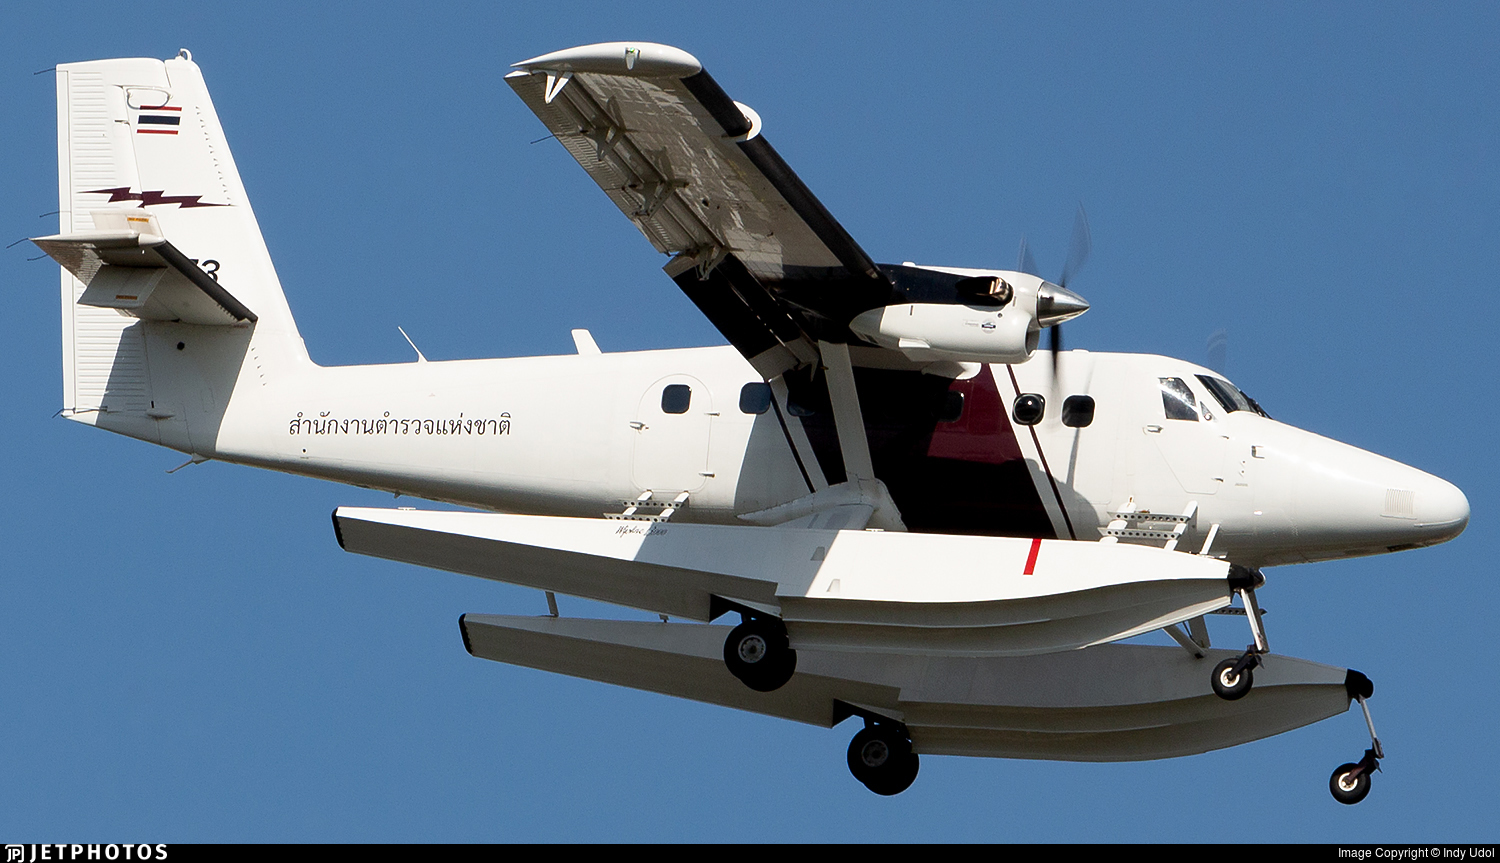 36973 - Viking DHC-6-400 Twin Otter - Thailand - Royal Thai Police Wing